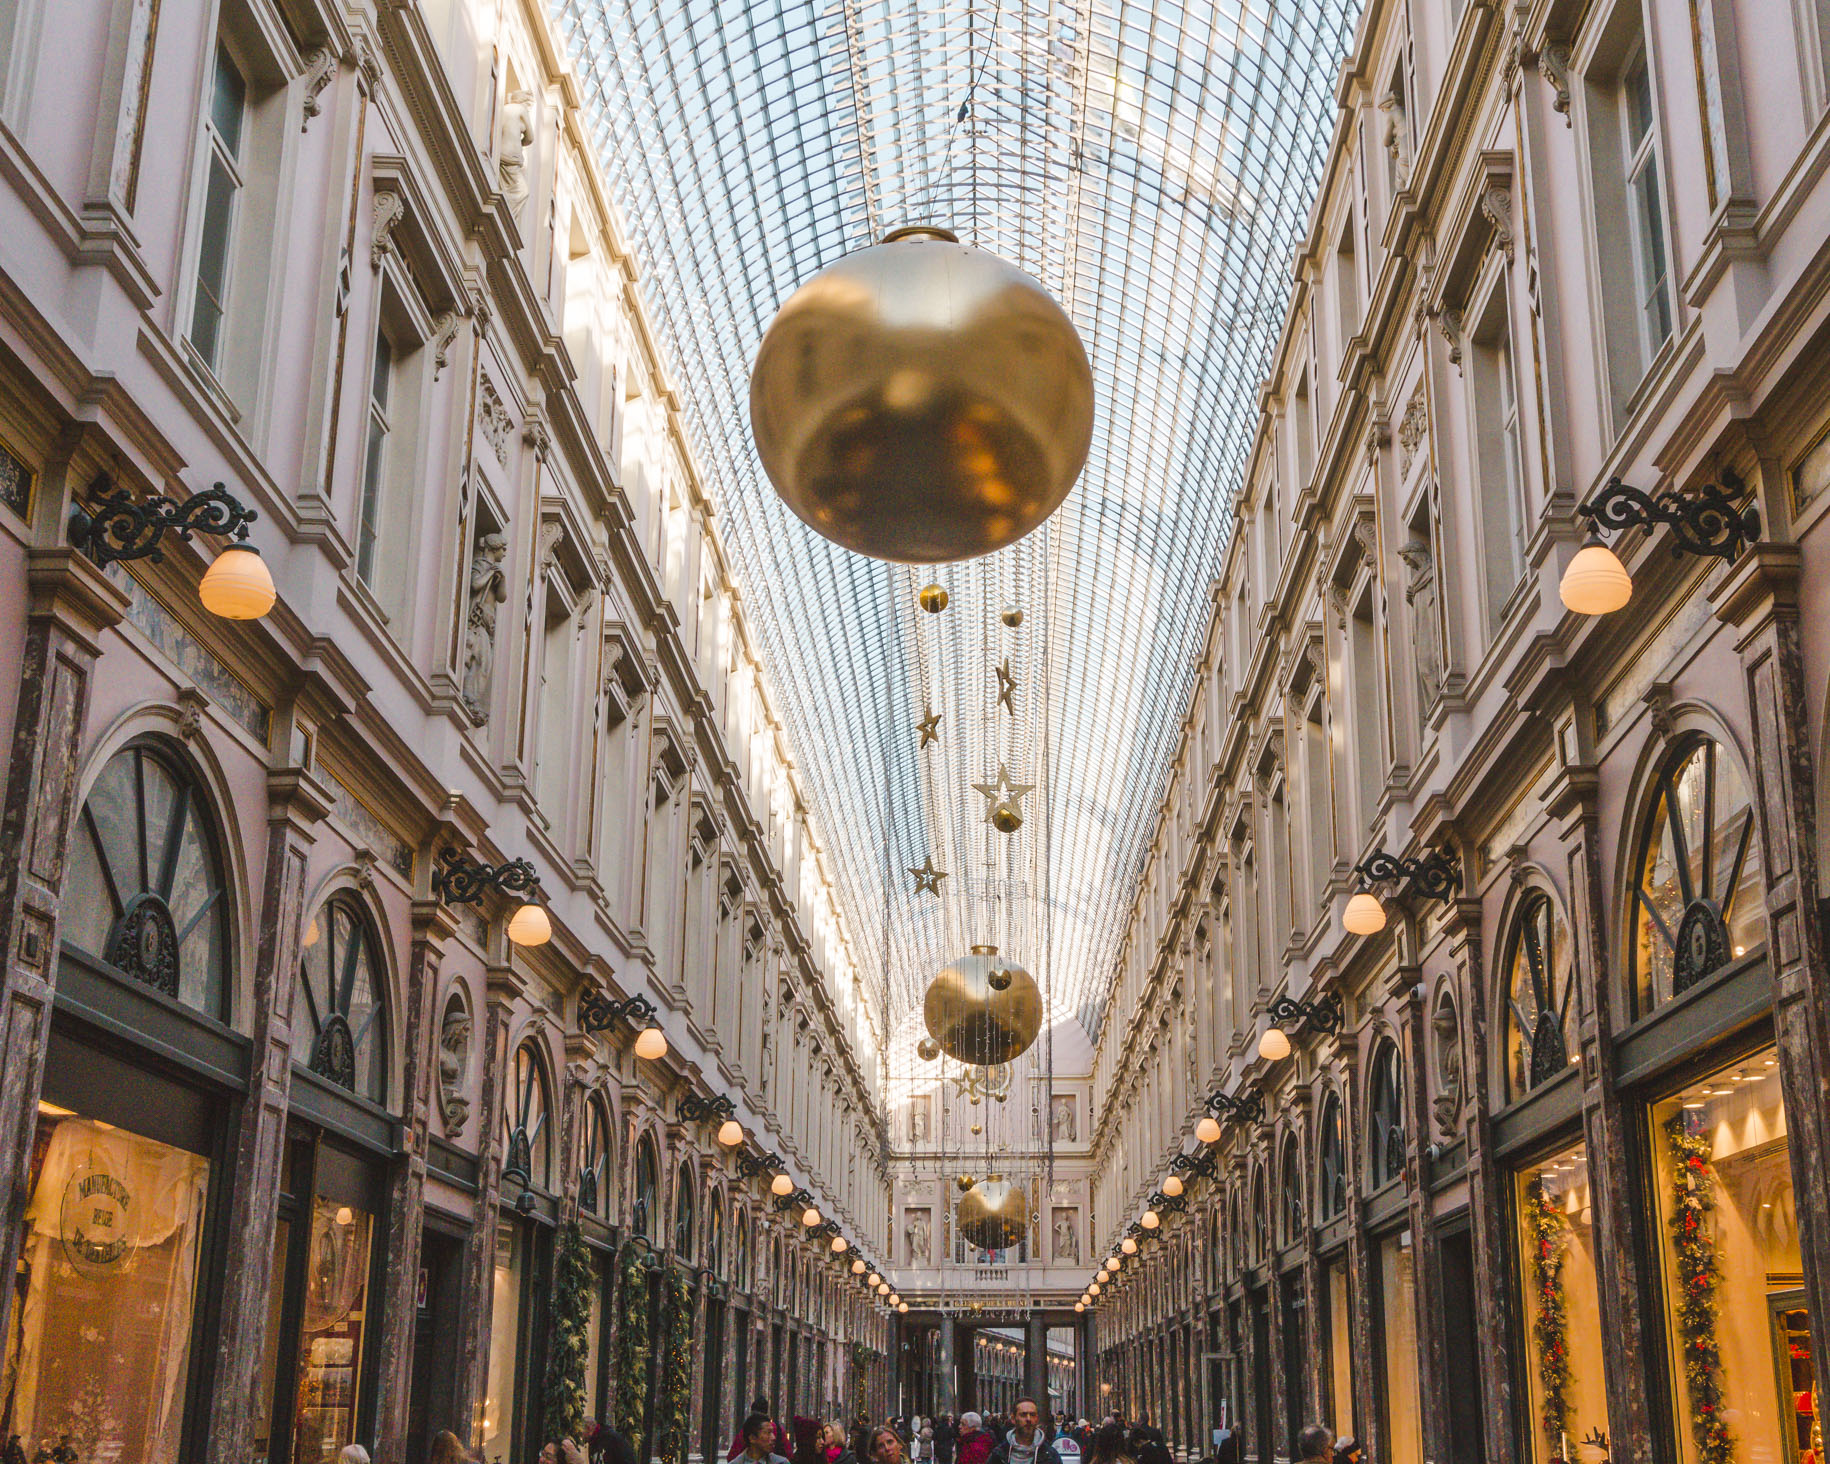 The photogenic Royal Saint-Hubert Galleries in Brussels, which is one of my favourite solo travel destinations in Europe.